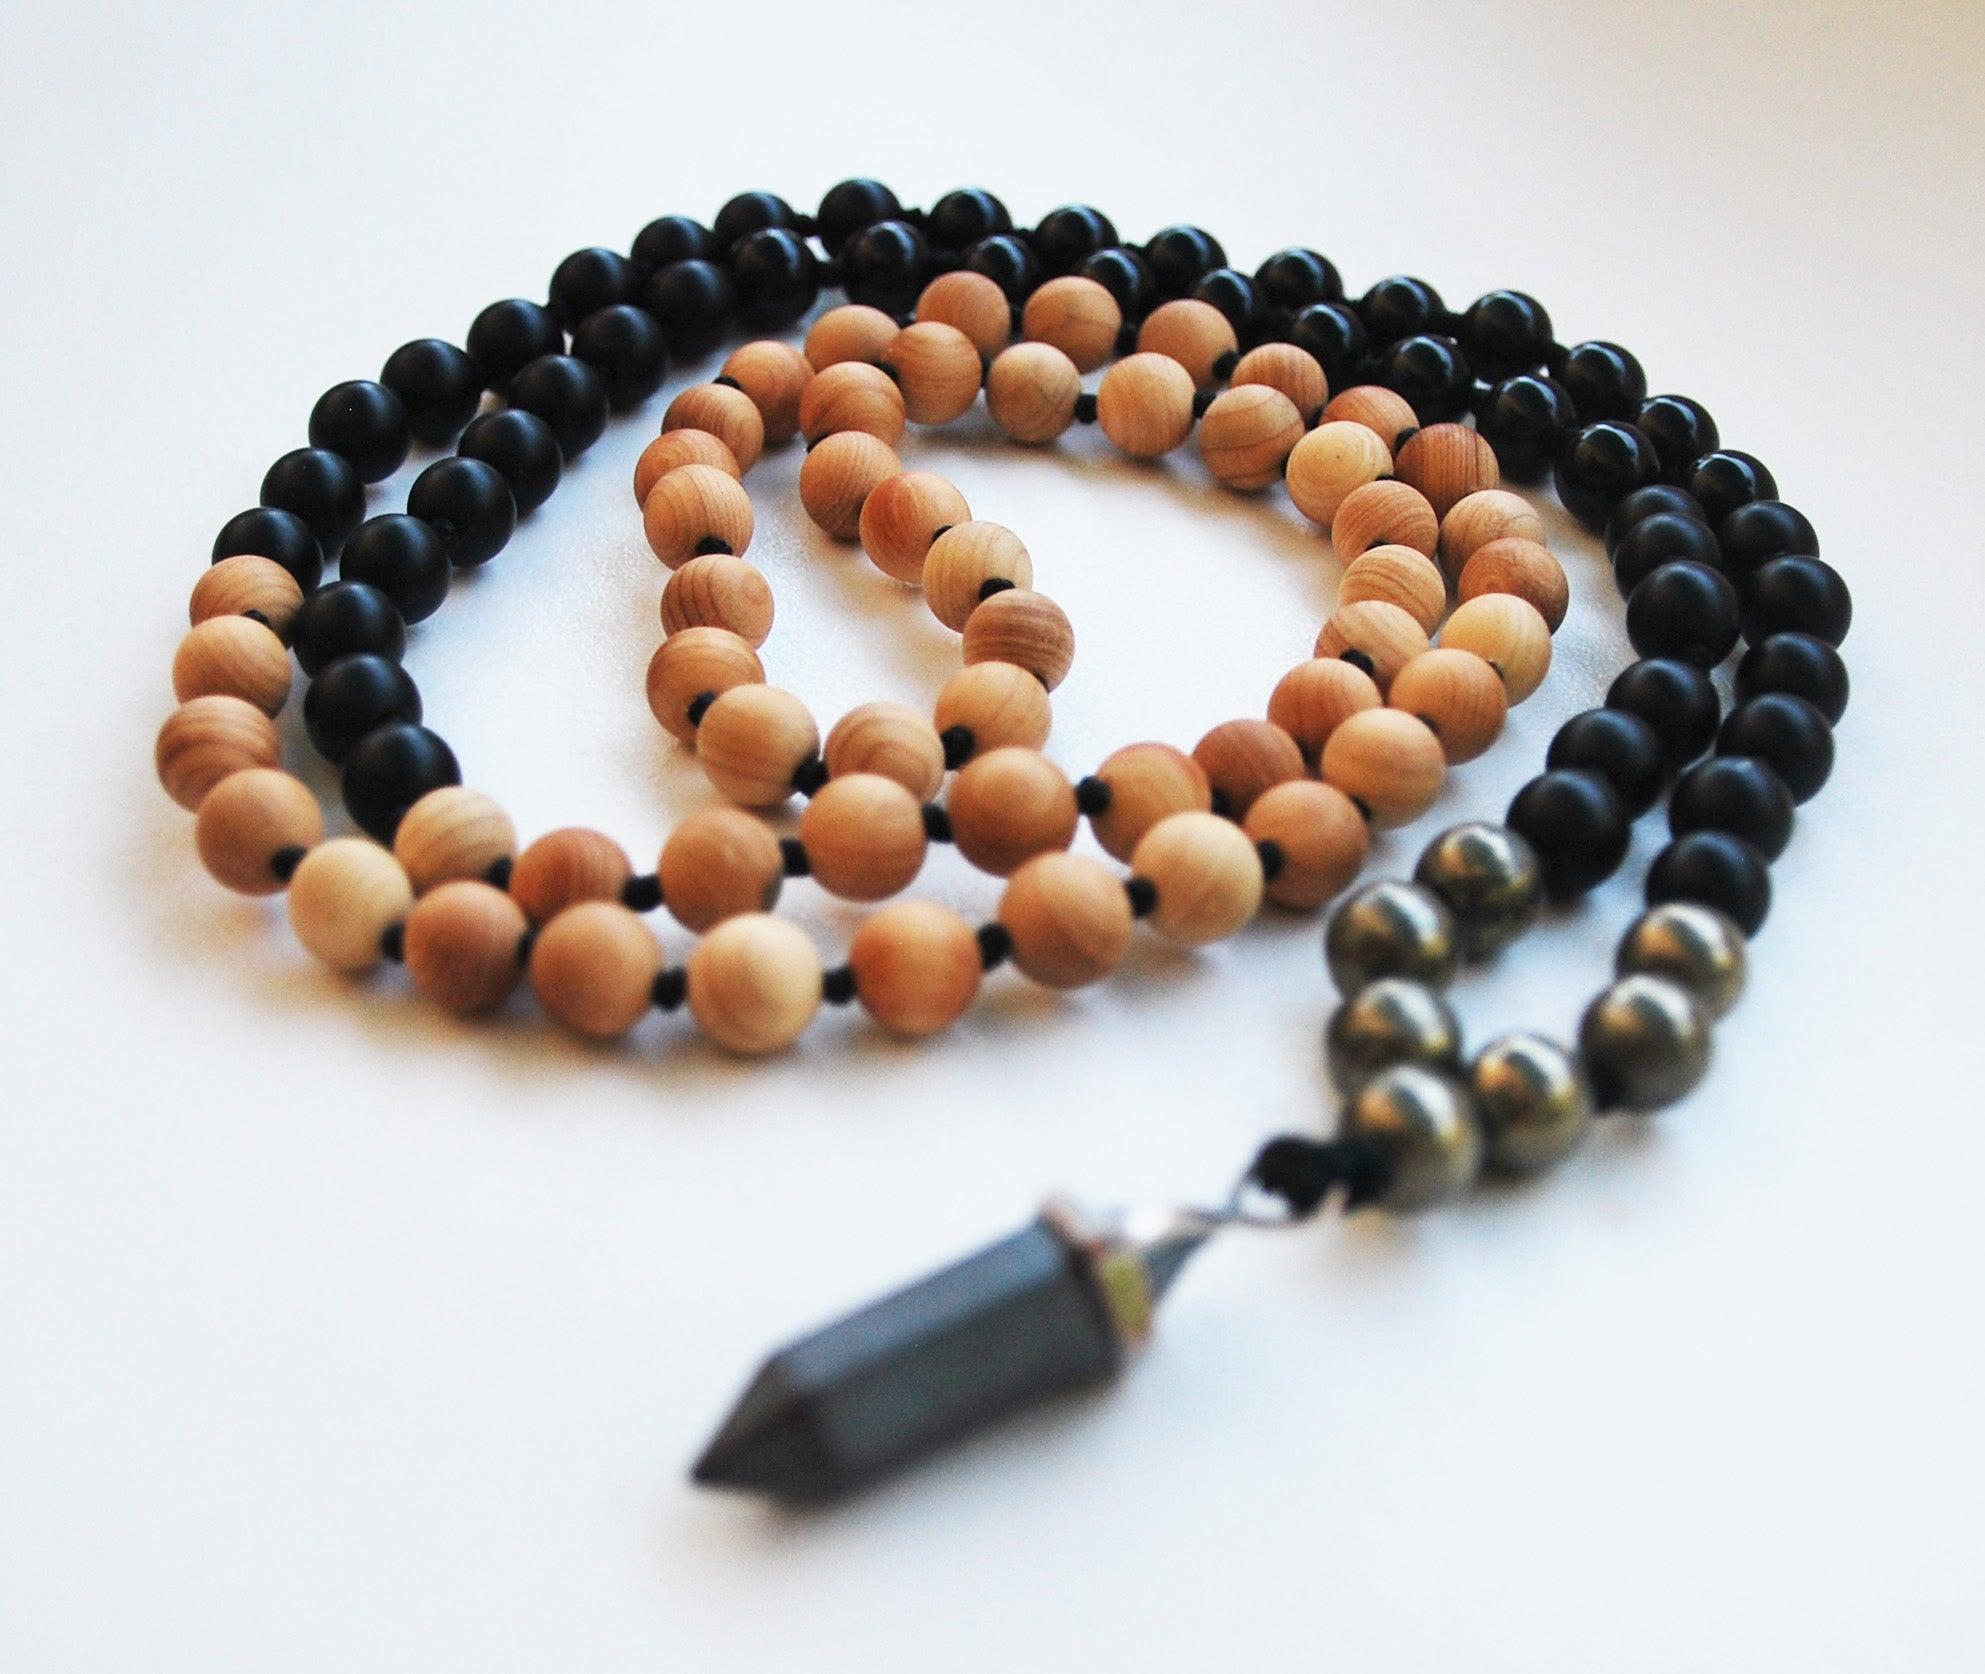 Cypress & Obsidian 108 Knotted Mala Necklace with Cotton Tassel